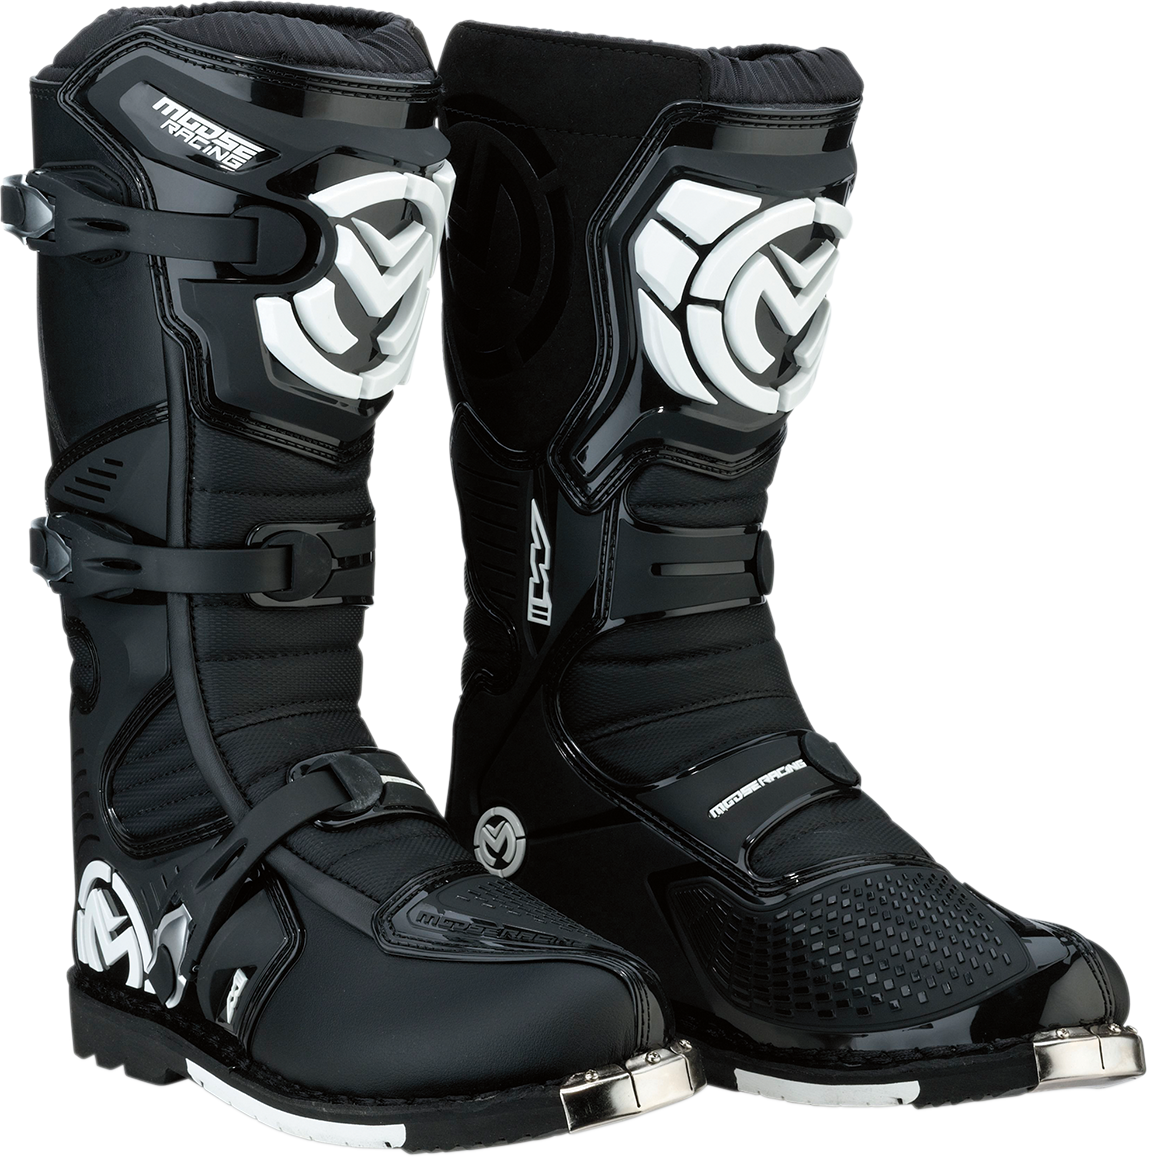 Moose Mens Pair S18 M1.3 Offroad Riding Dirtbike MX Racing Boots